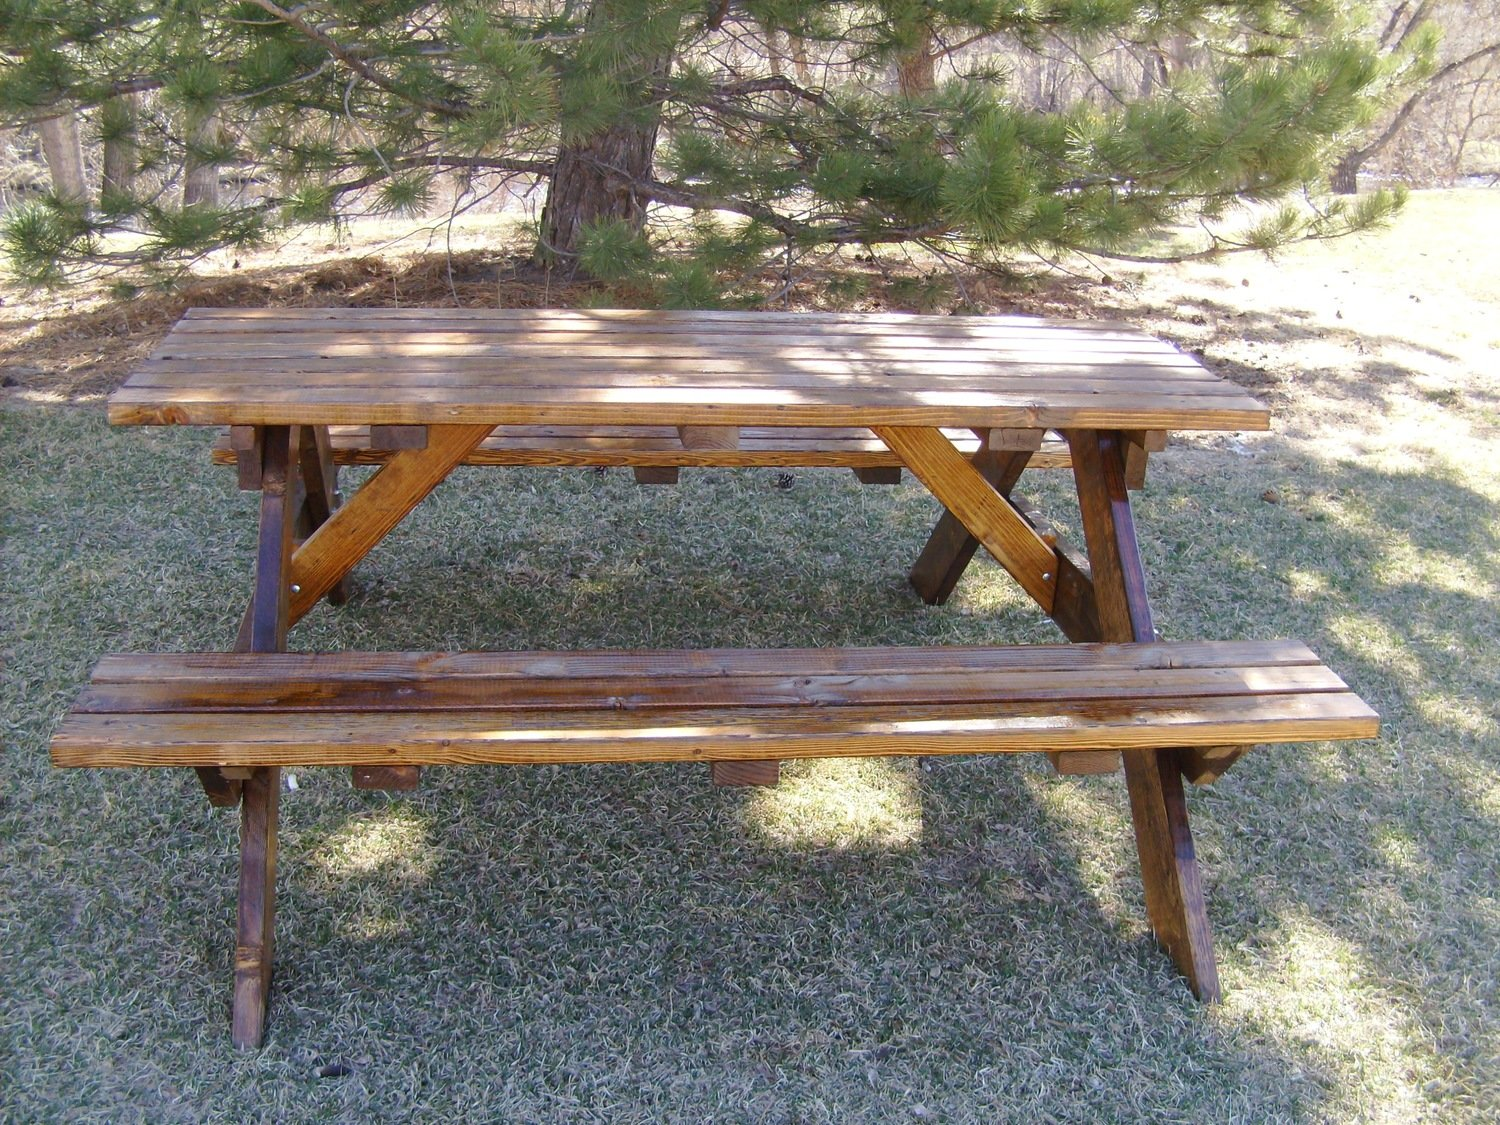 Marvelous Picnic Table With Attached Bench 6 Foot Long Ibusinesslaw Wood Chair Design Ideas Ibusinesslaworg